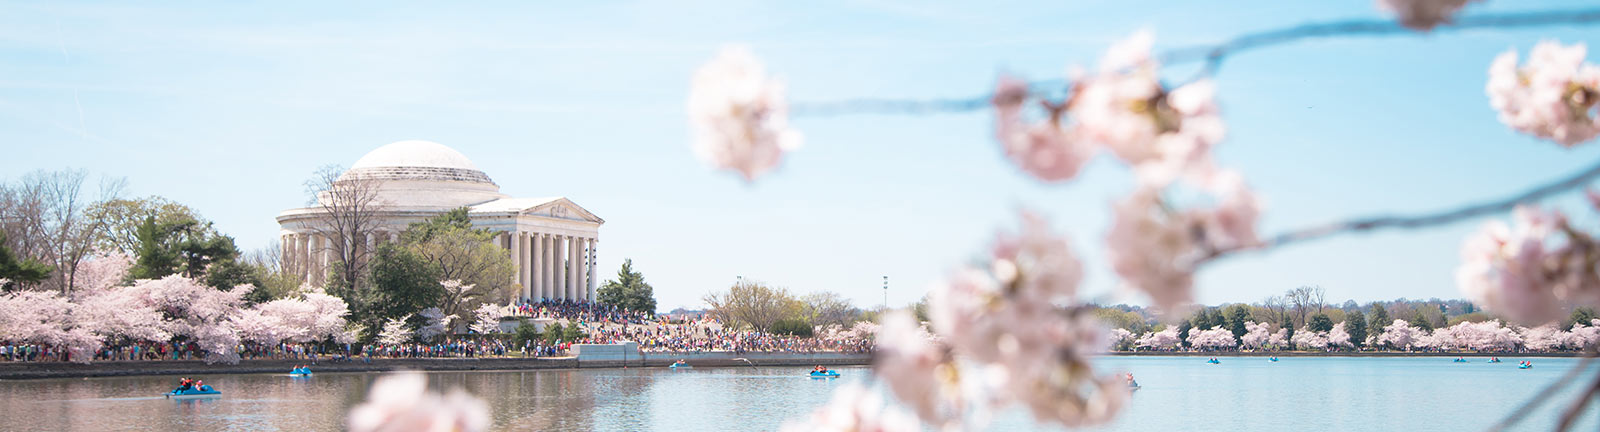 Spring and cherry blossoms in Washington, DC - Your ultimate guide to the National Cherry Blossom Festival and springtime in DC